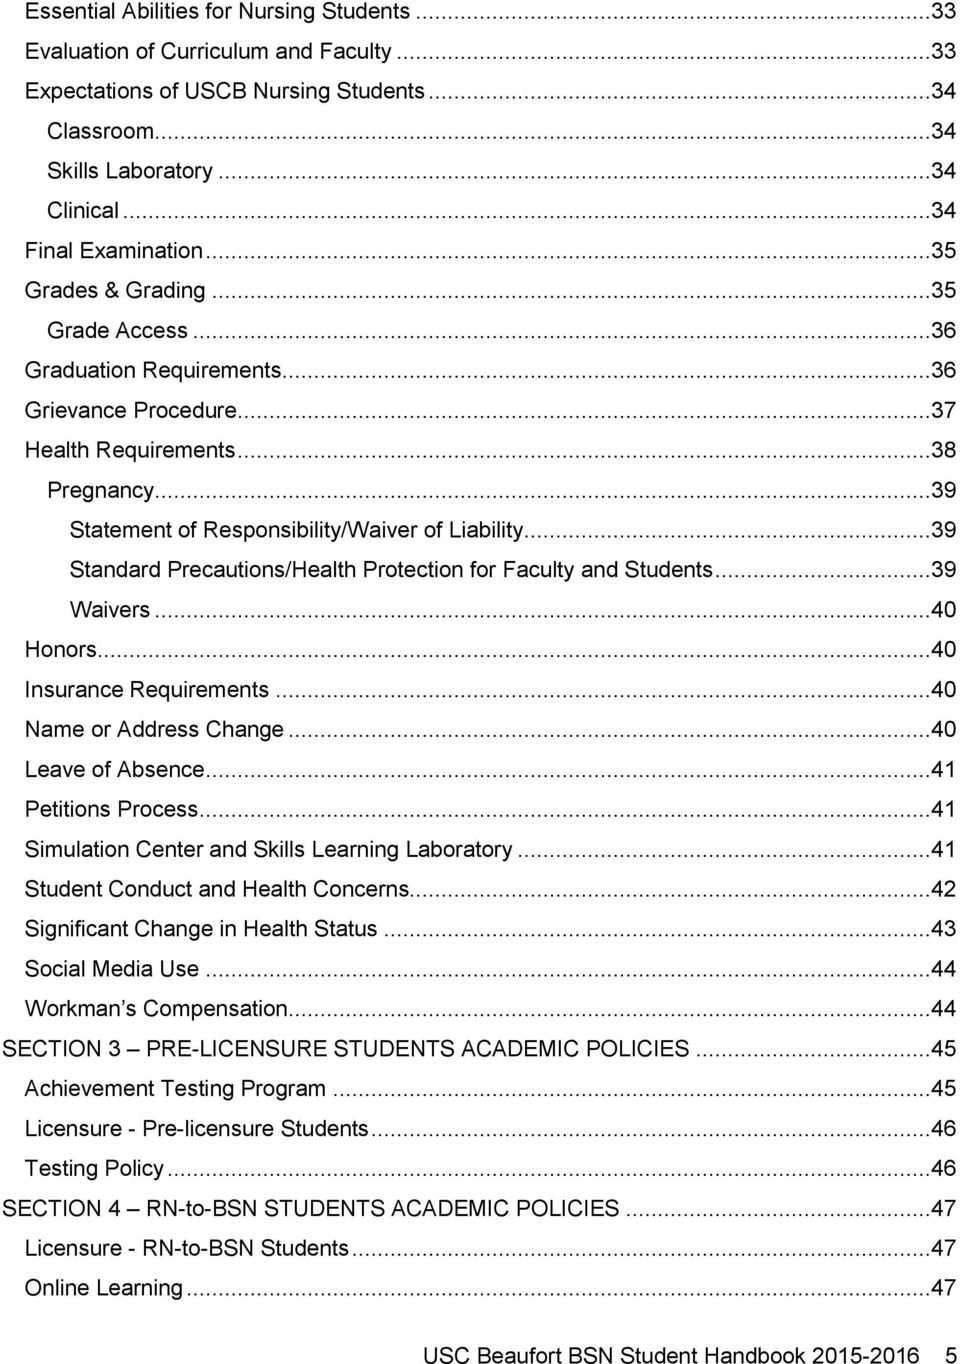 ..39 Standard Precautions/Health Protection for Faculty and Students...39 Waivers...40 Honors...40 Insurance Requirements...40 Name or Address Change...40 Leave of Absence...41 Petitions Process.